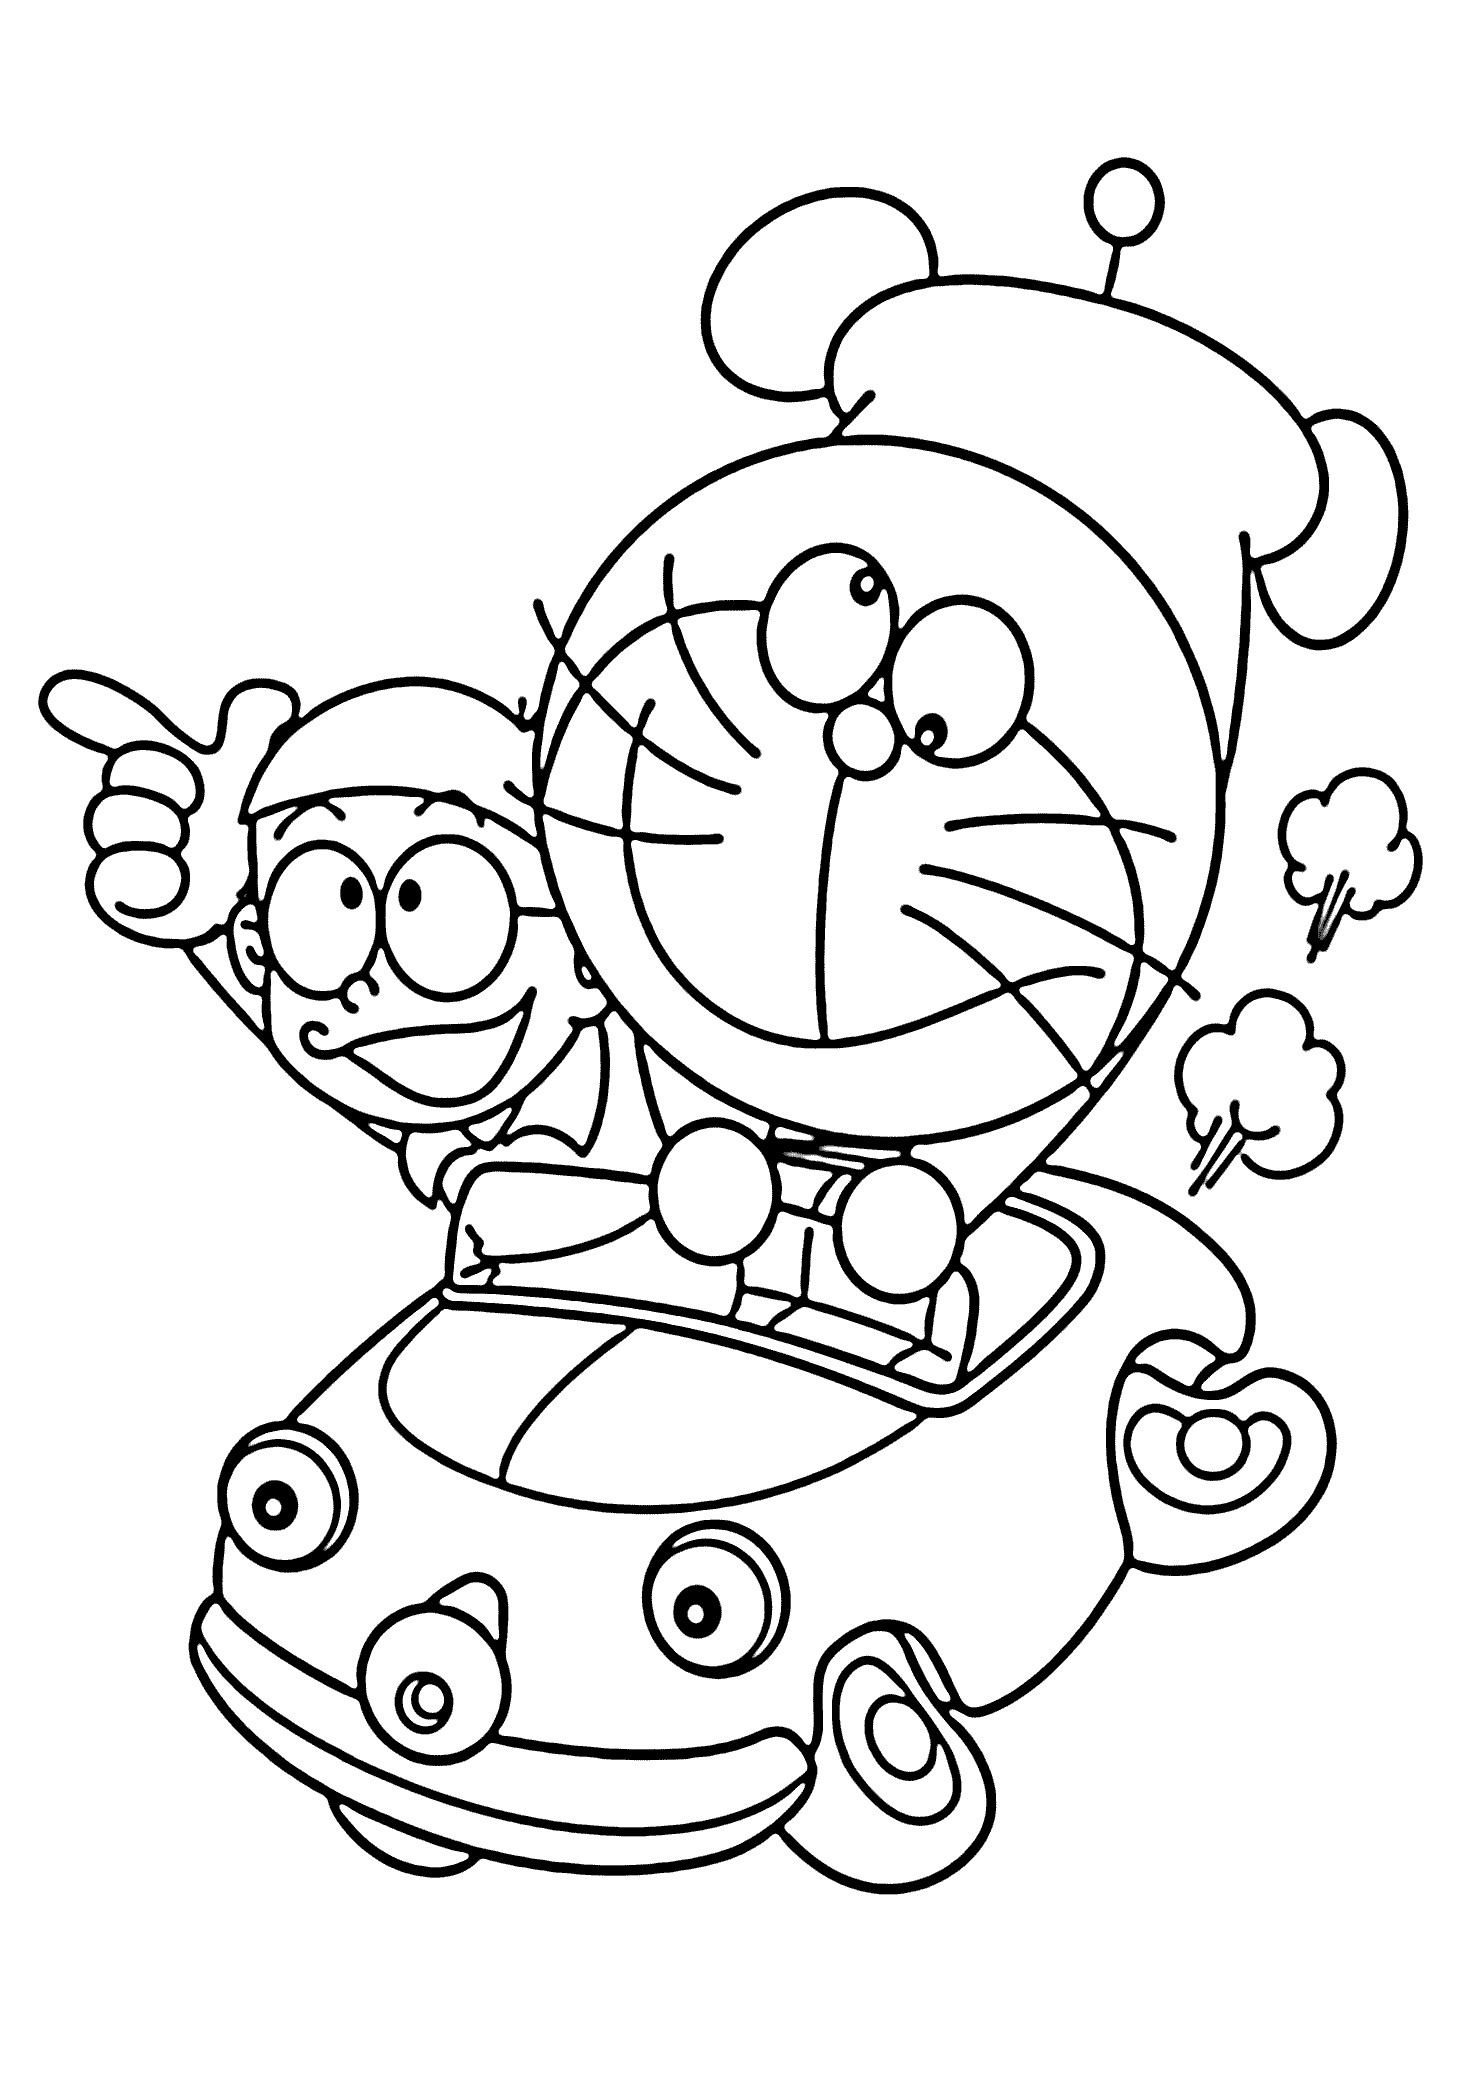 19 Free Mario Coloring Pages Gallery Coloring Sheets